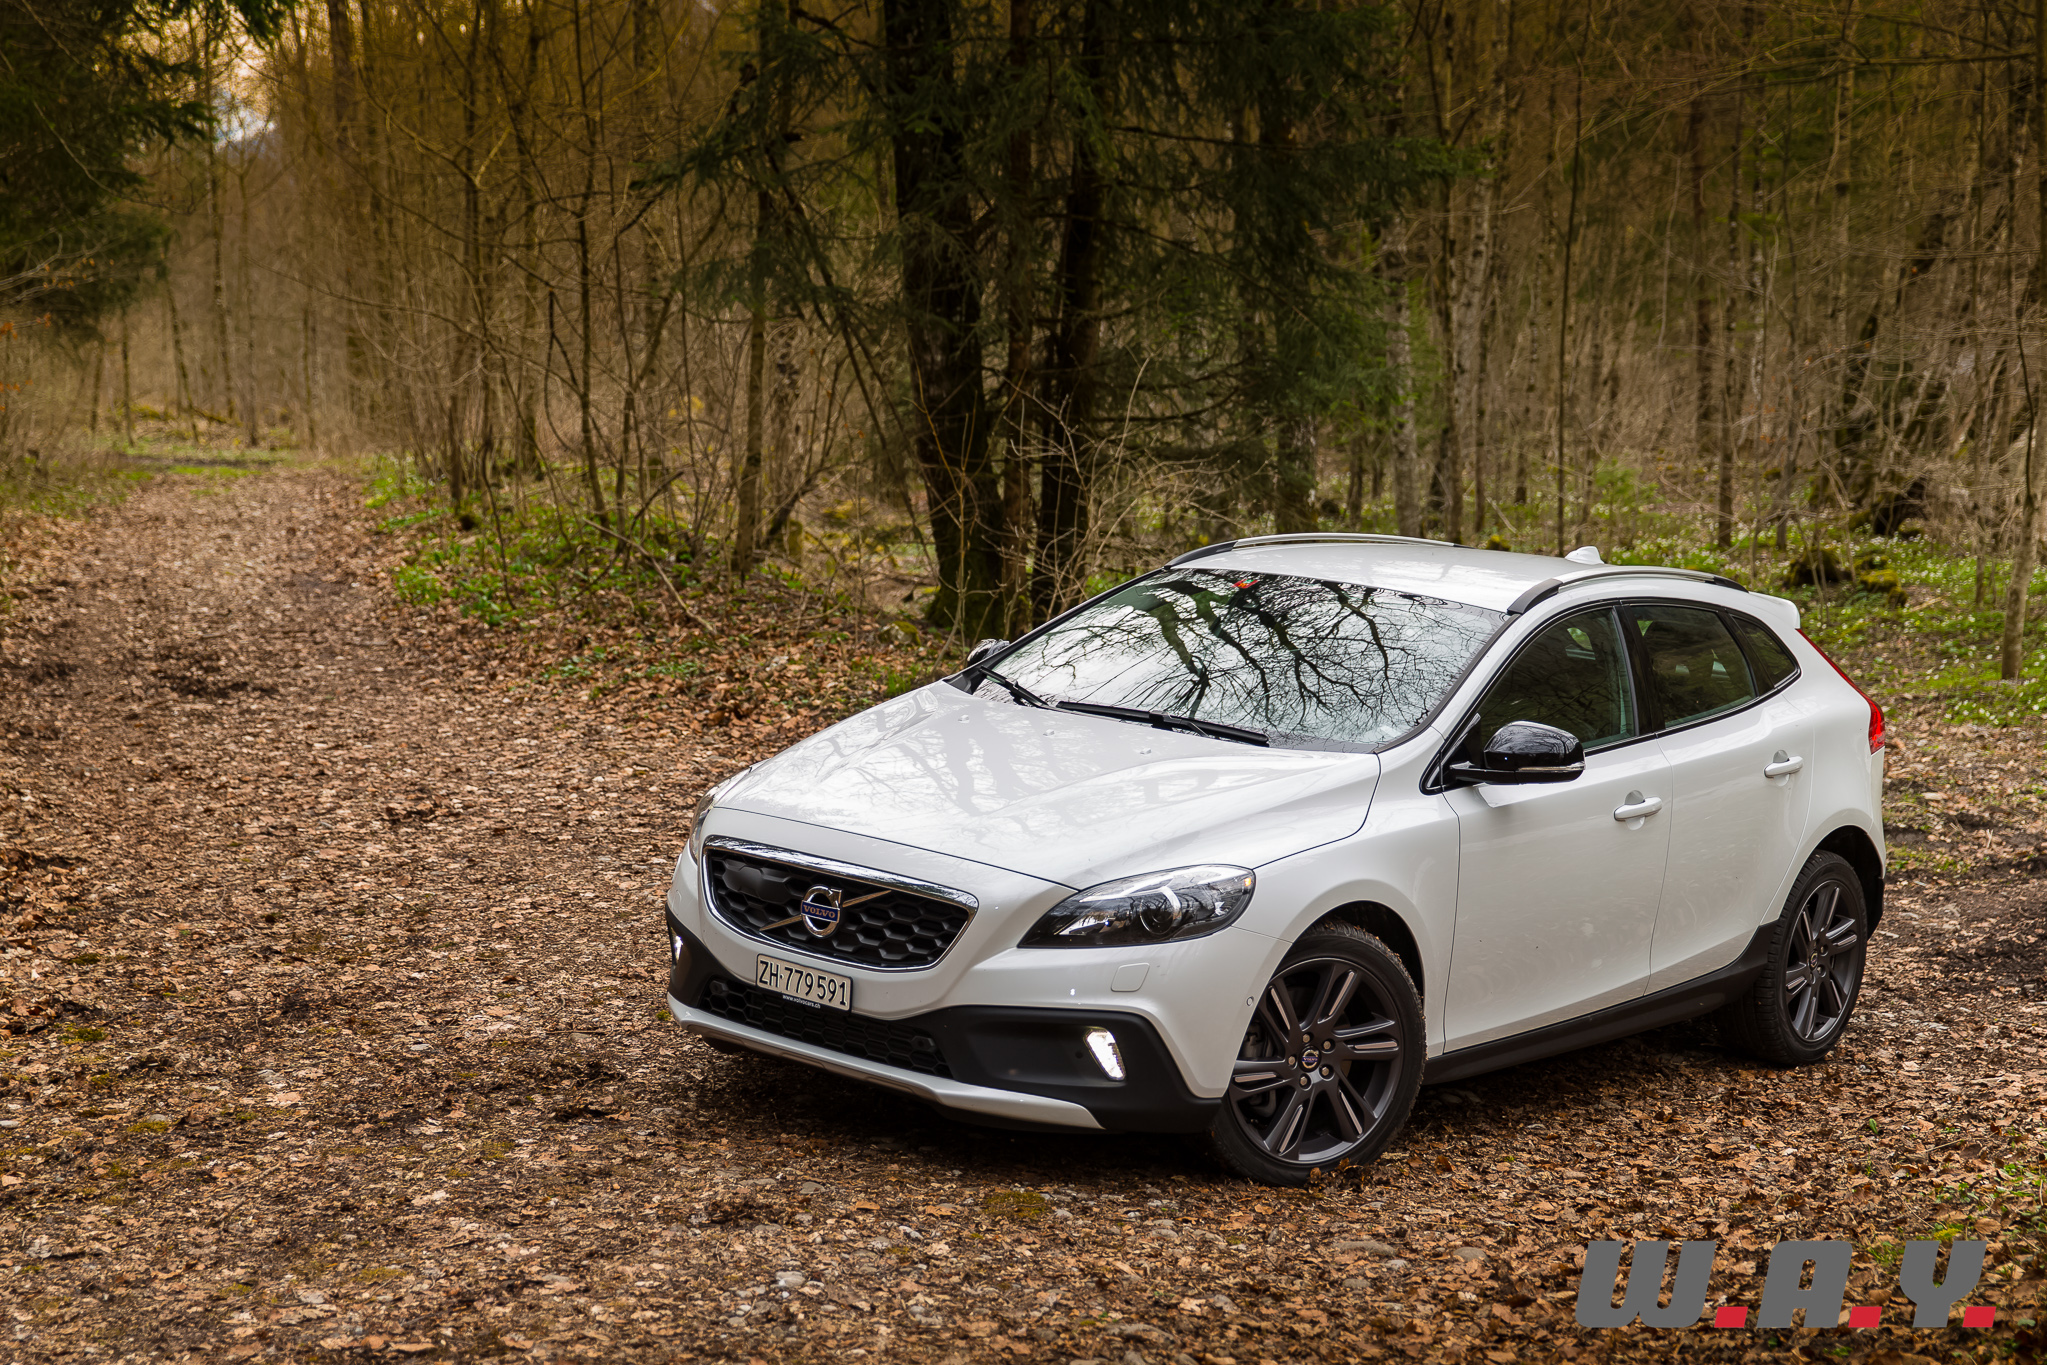 essai volvo v40 cross country t4 awd l alternative scandinave wheels and. Black Bedroom Furniture Sets. Home Design Ideas